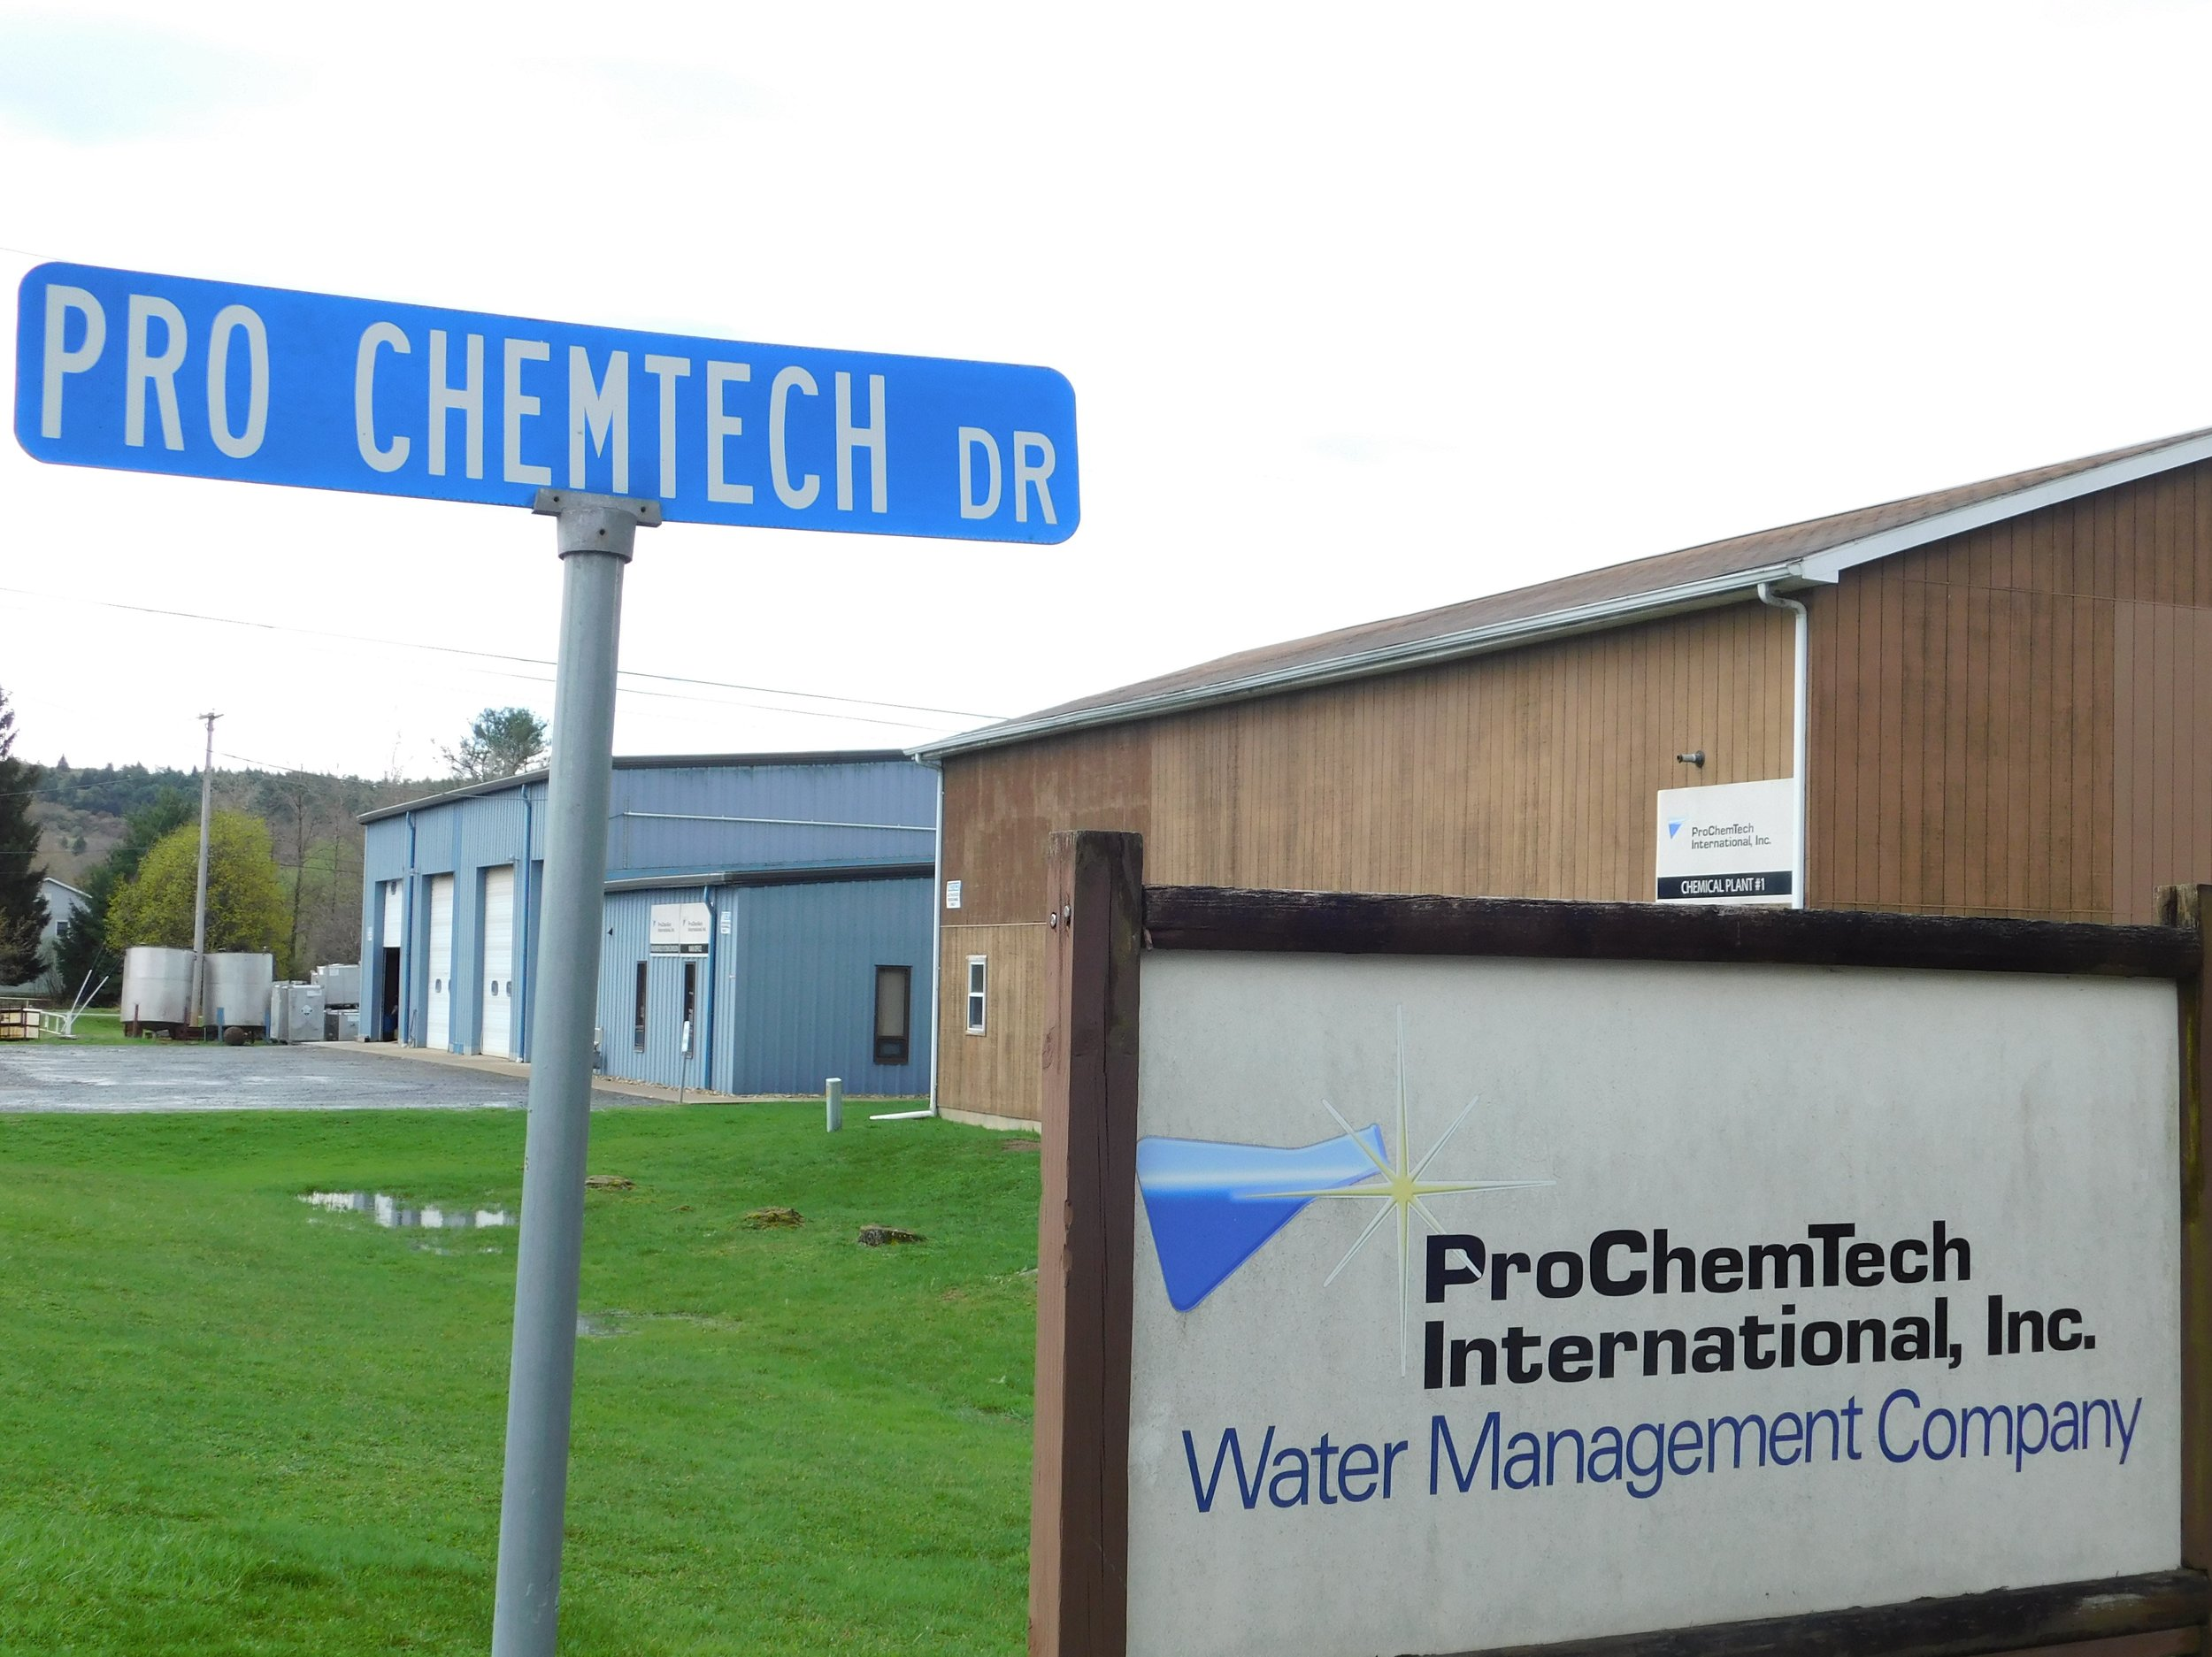 About Us - ProChemTech International, Inc. has unique expertise in research & development, environmental and traditional engineering, on-site service, equipment and systems design, and manufacture of both chemicals and equipment.